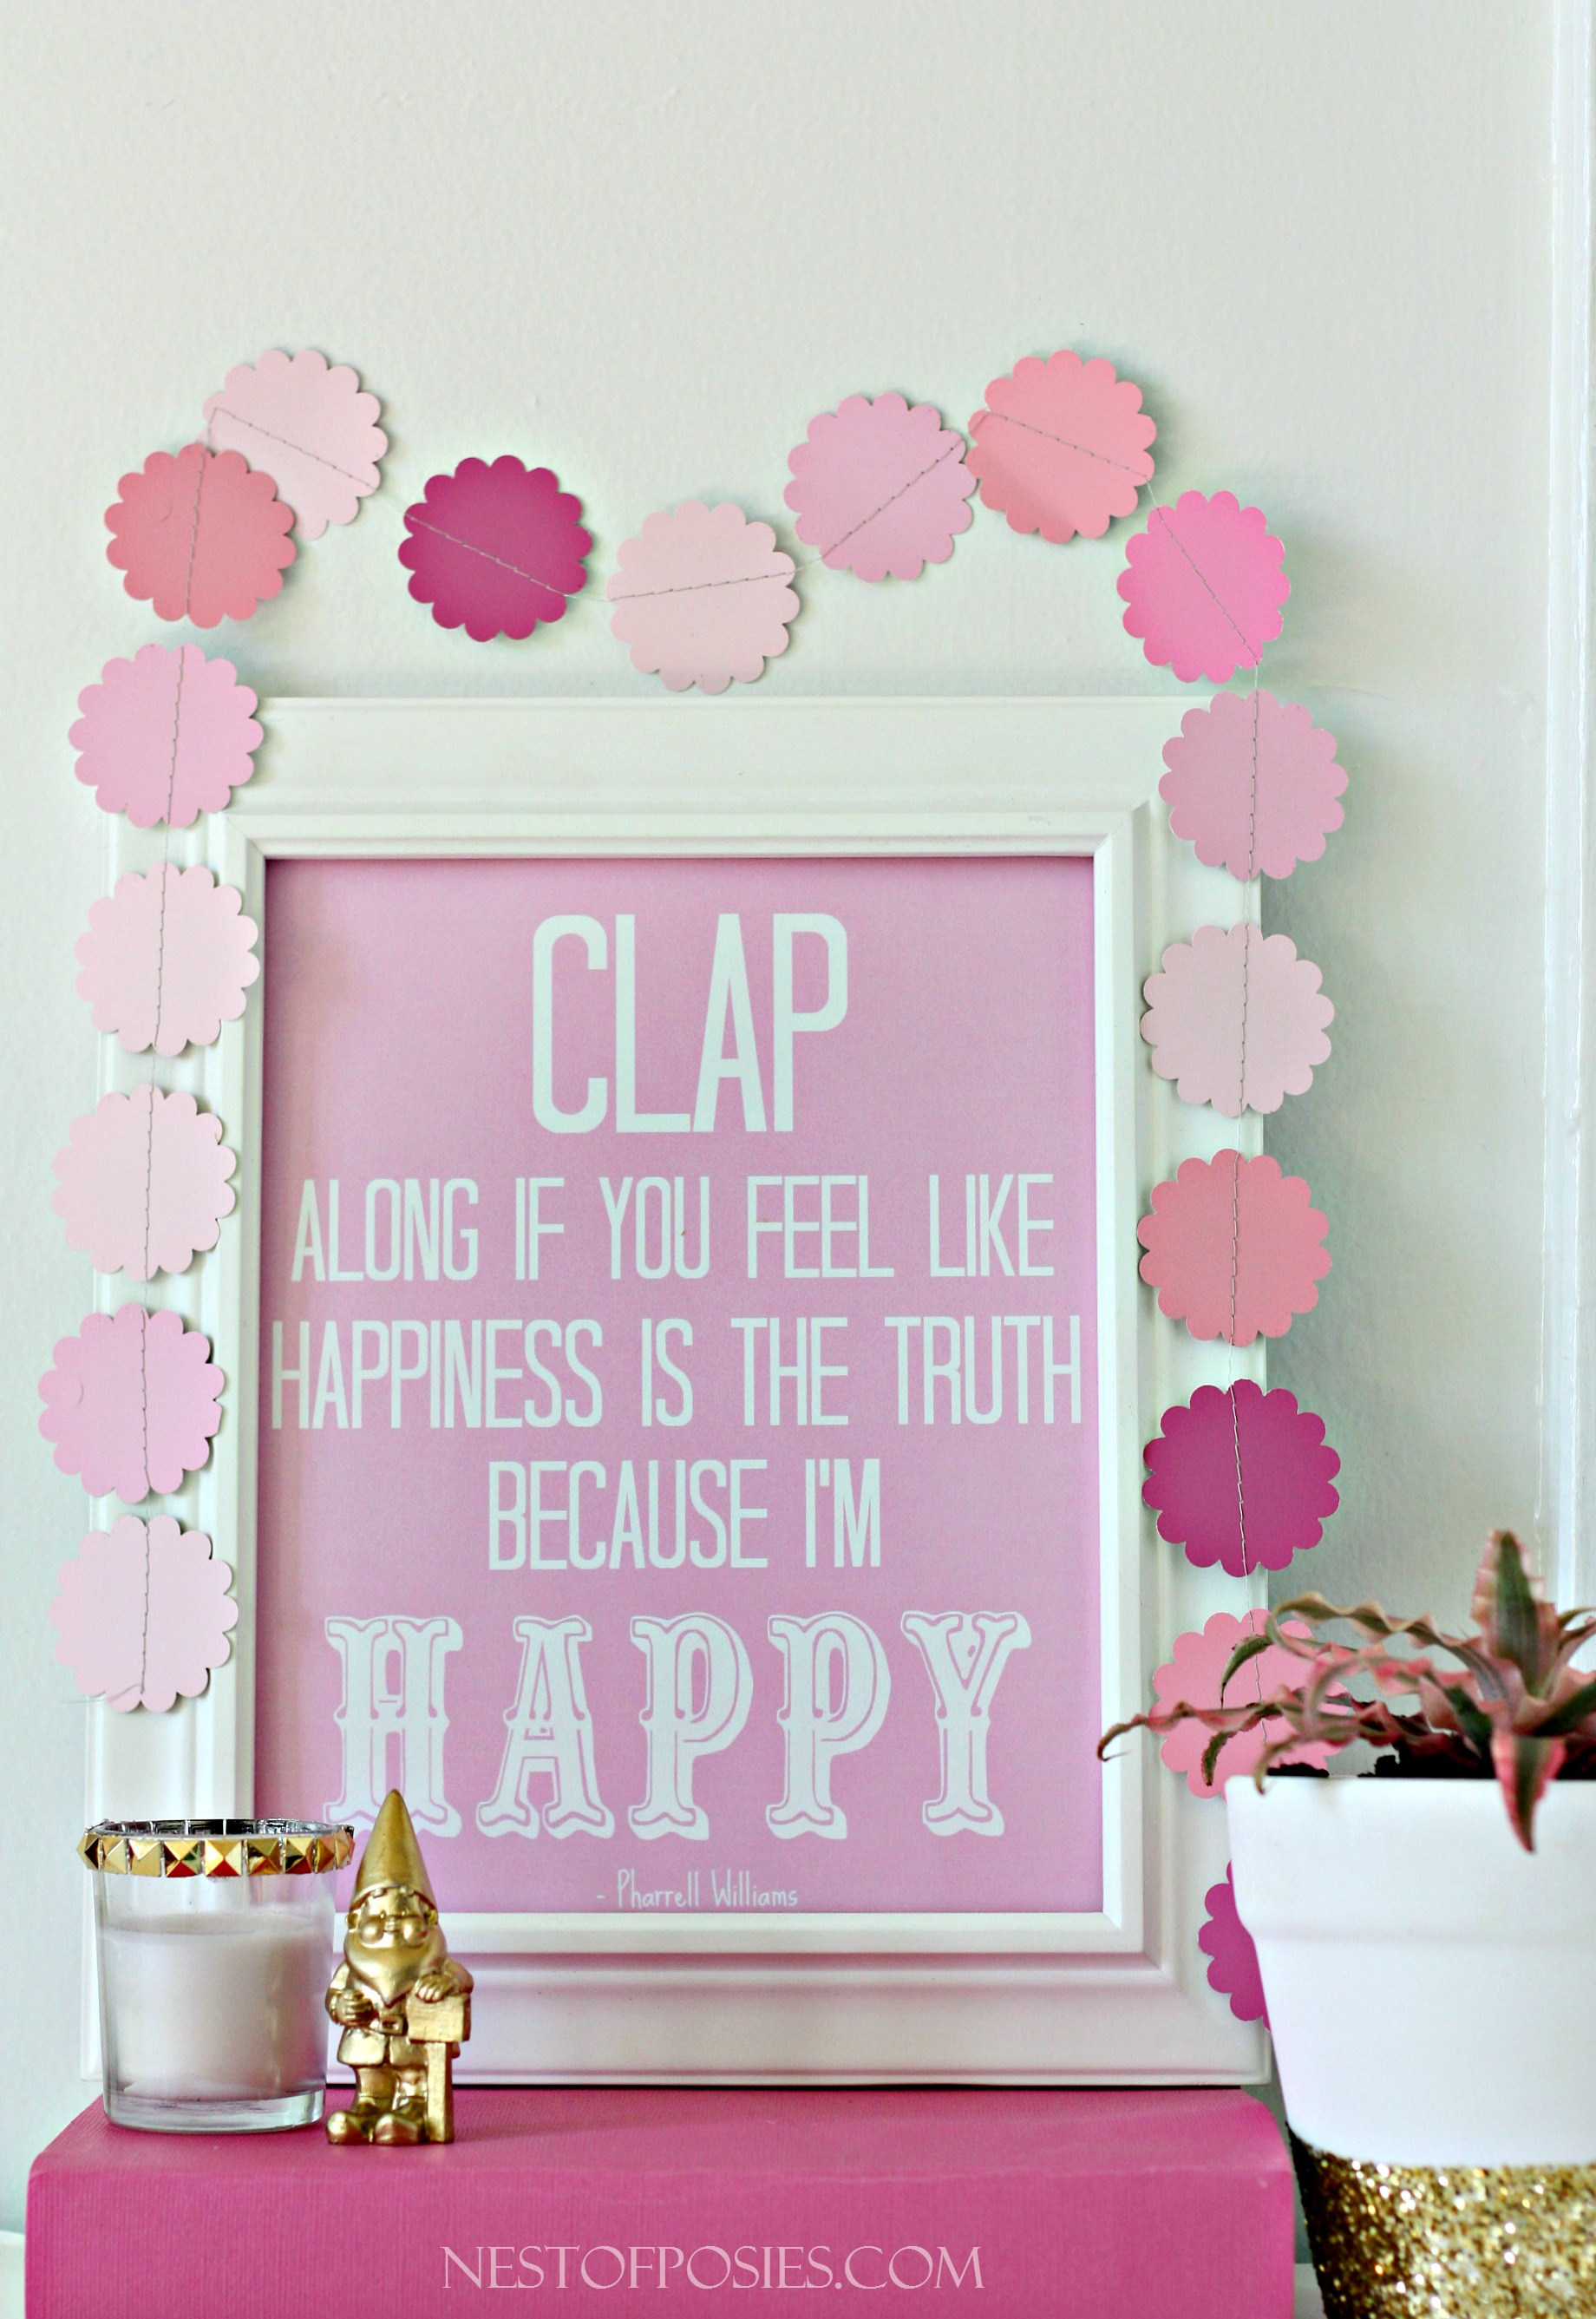 Because I'm Happy Printable